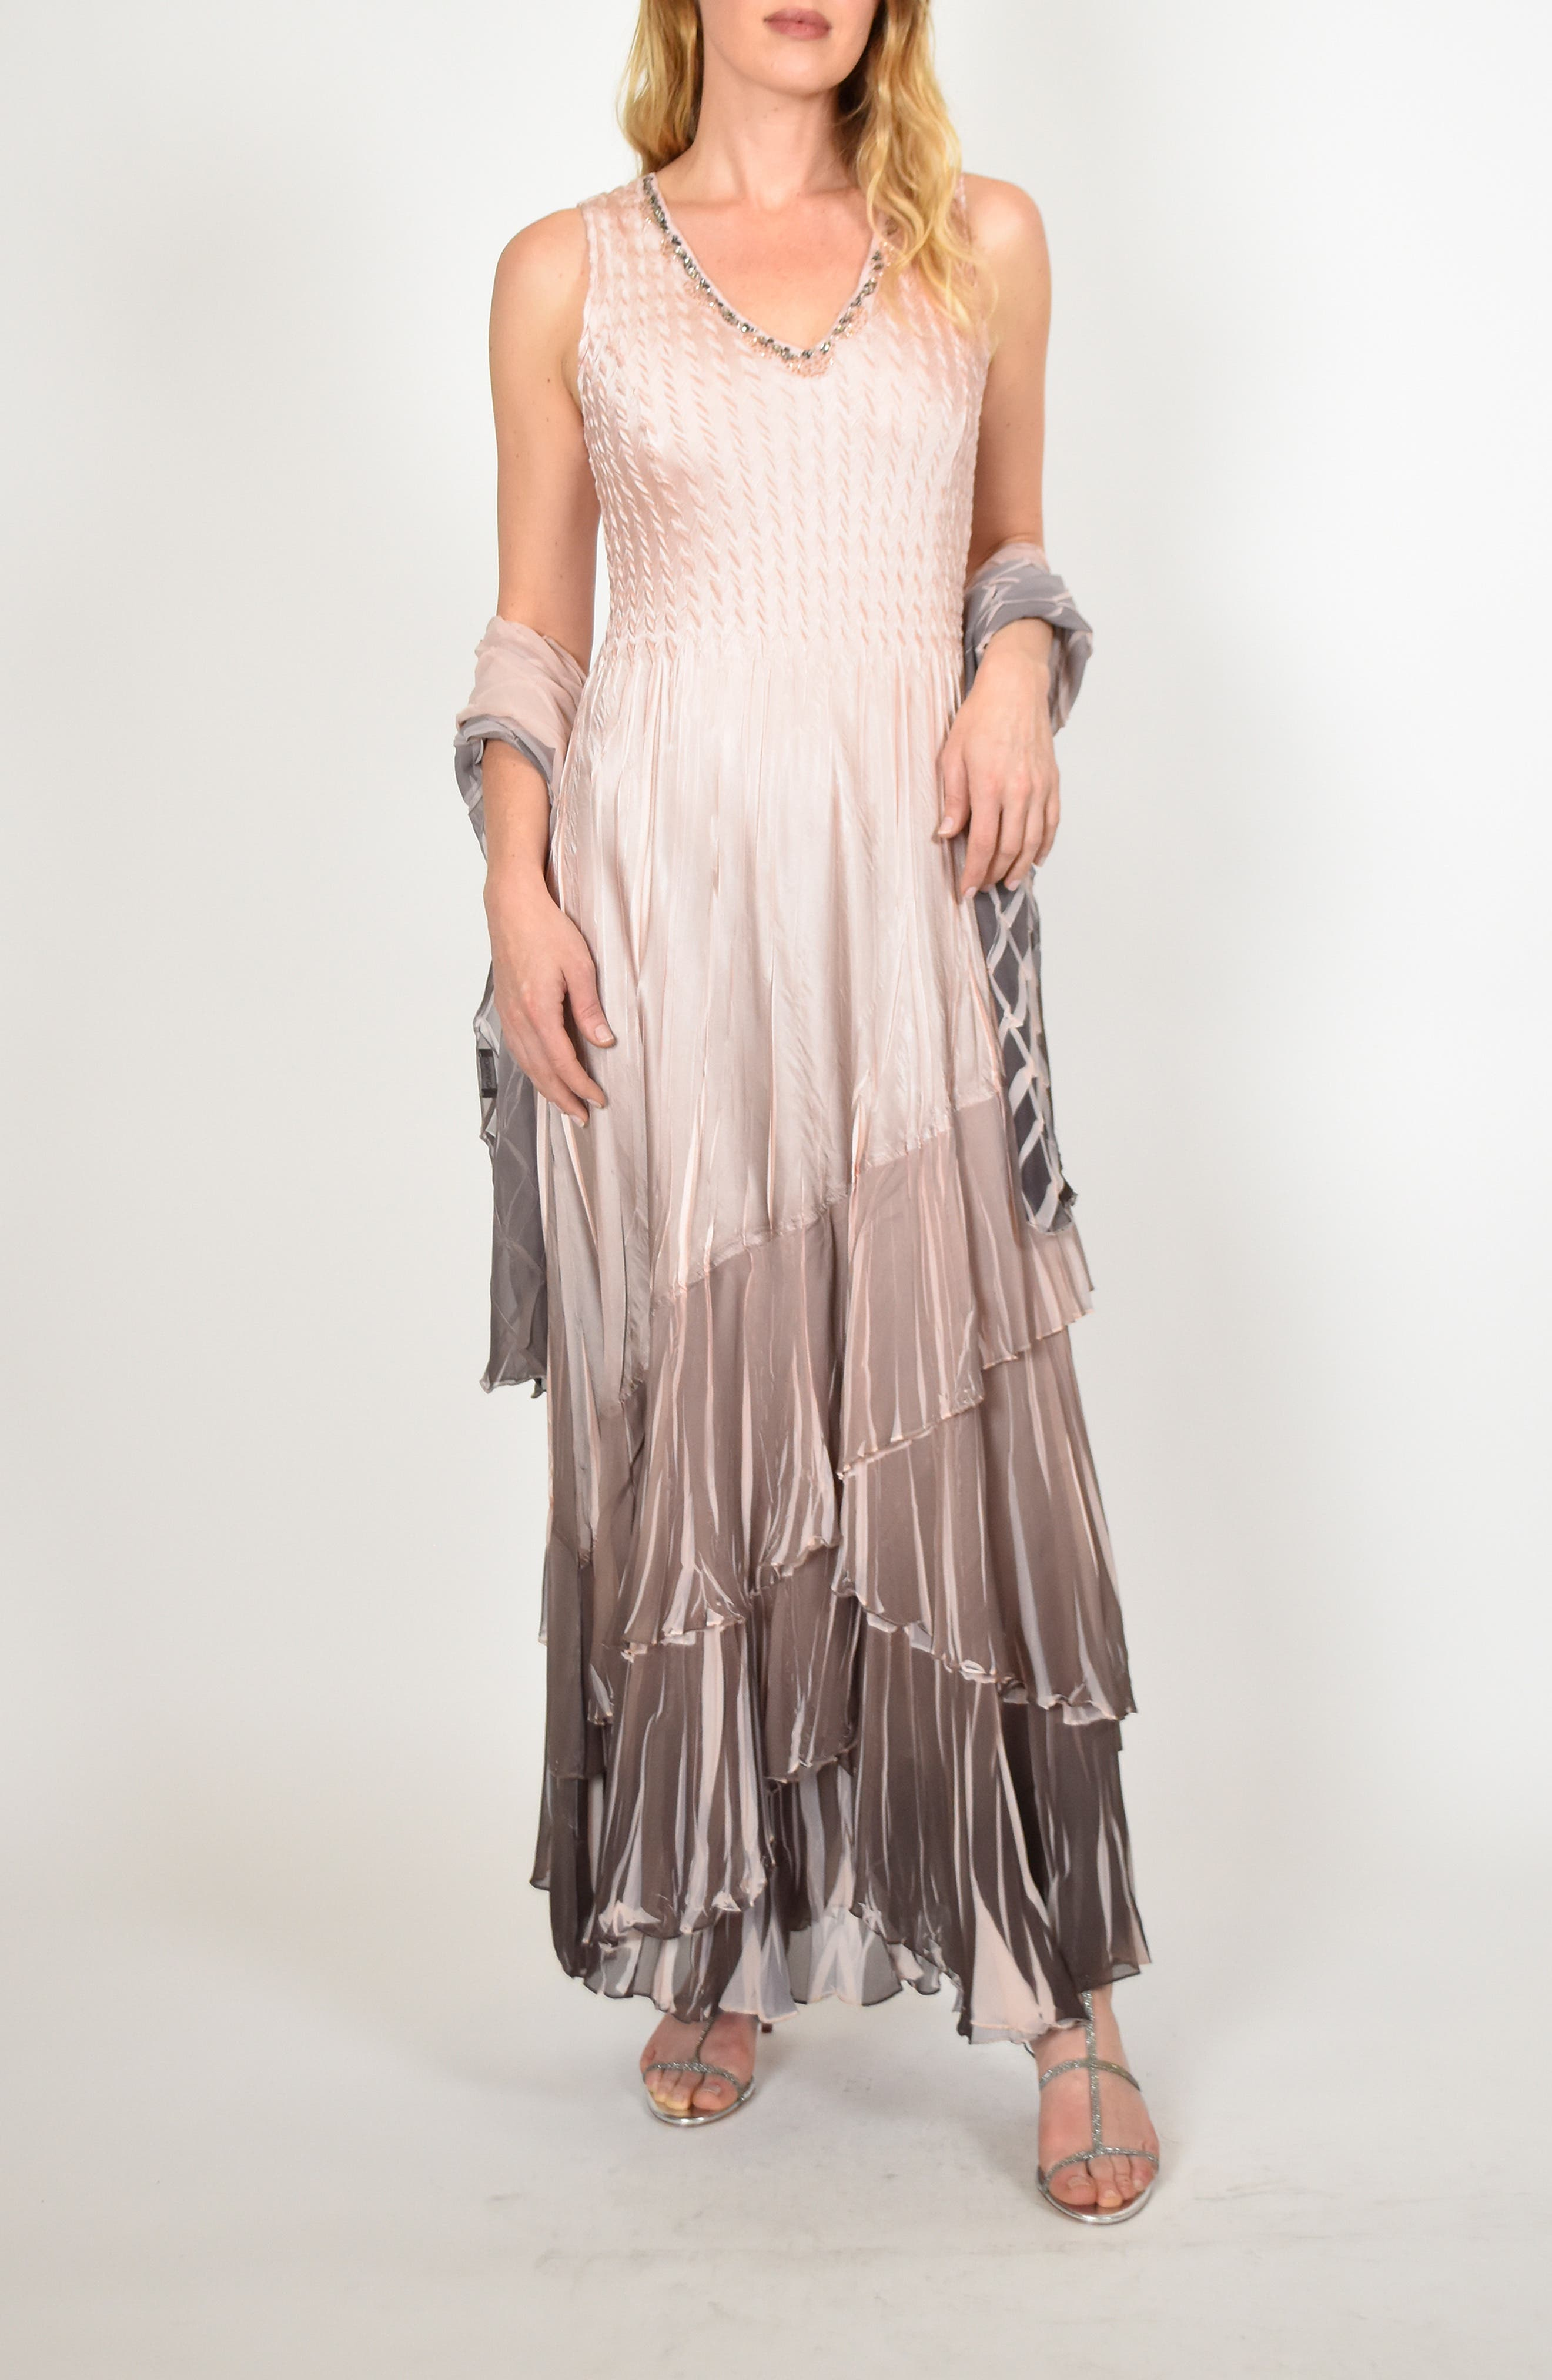 Vintage Evening Dresses and Formal Evening Gowns Womens Komarov Layered Maxi Dress With Wrap $274.80 AT vintagedancer.com